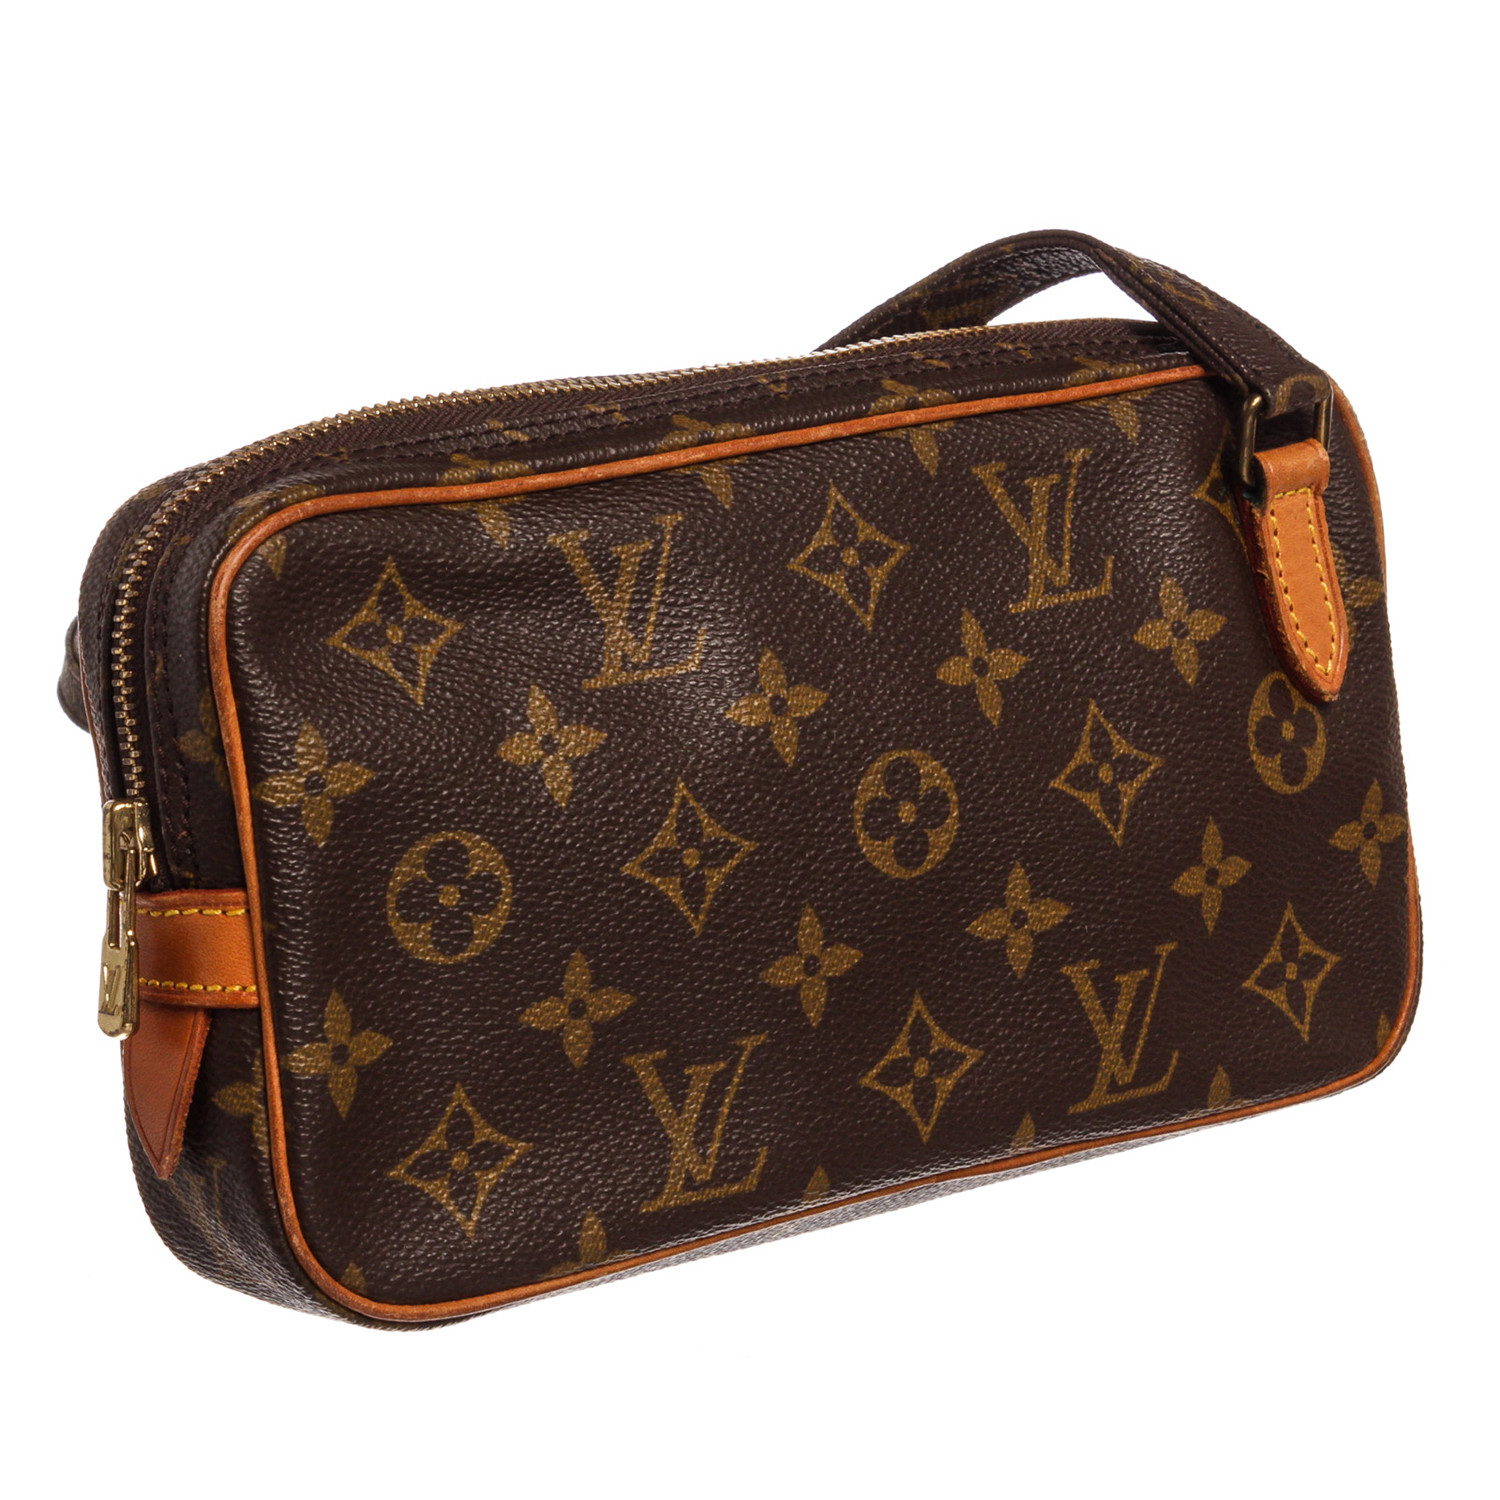 Canvas Leather Monogram Marly Side Bag    Pre-Owned    TH0920 - Pre ... a3436ea19155